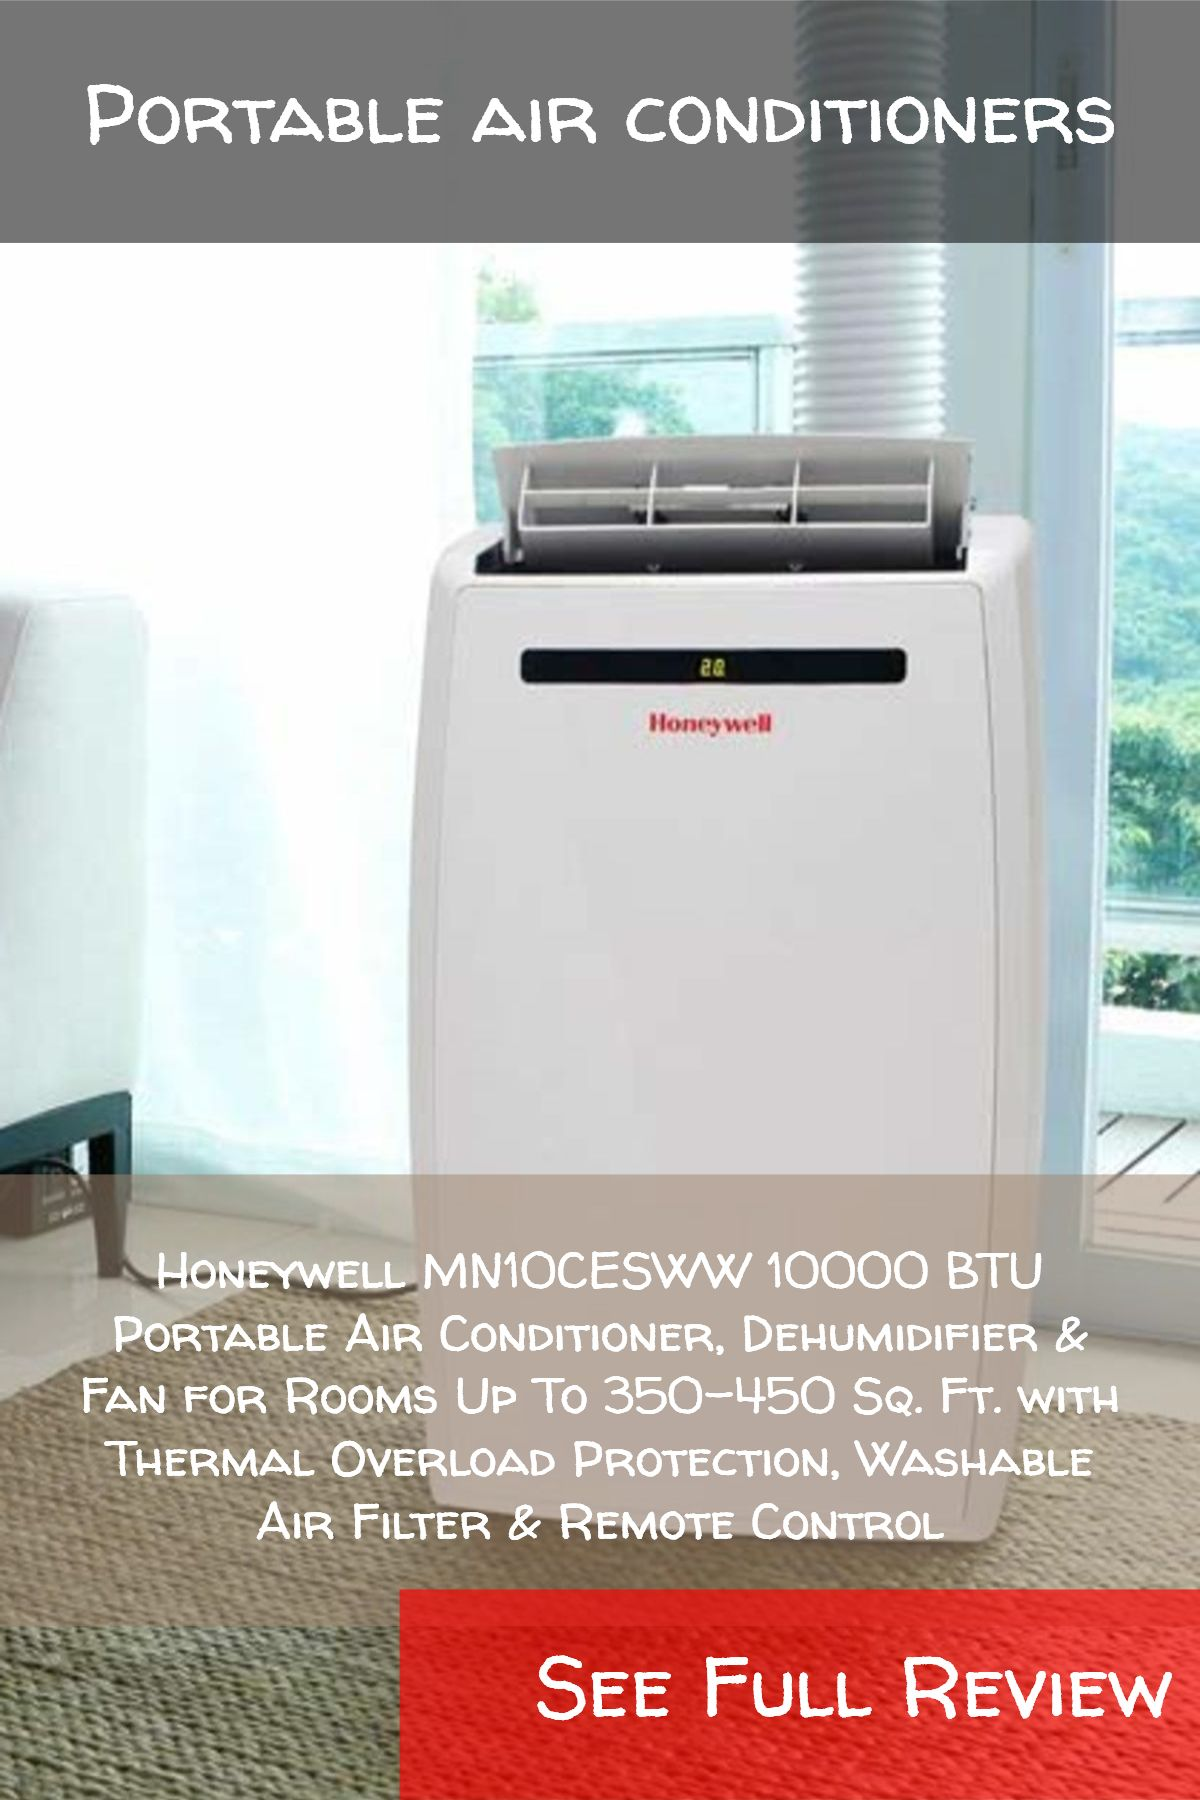 Portable air conditioners / Honeywell MN10CESWW 10000 BTU